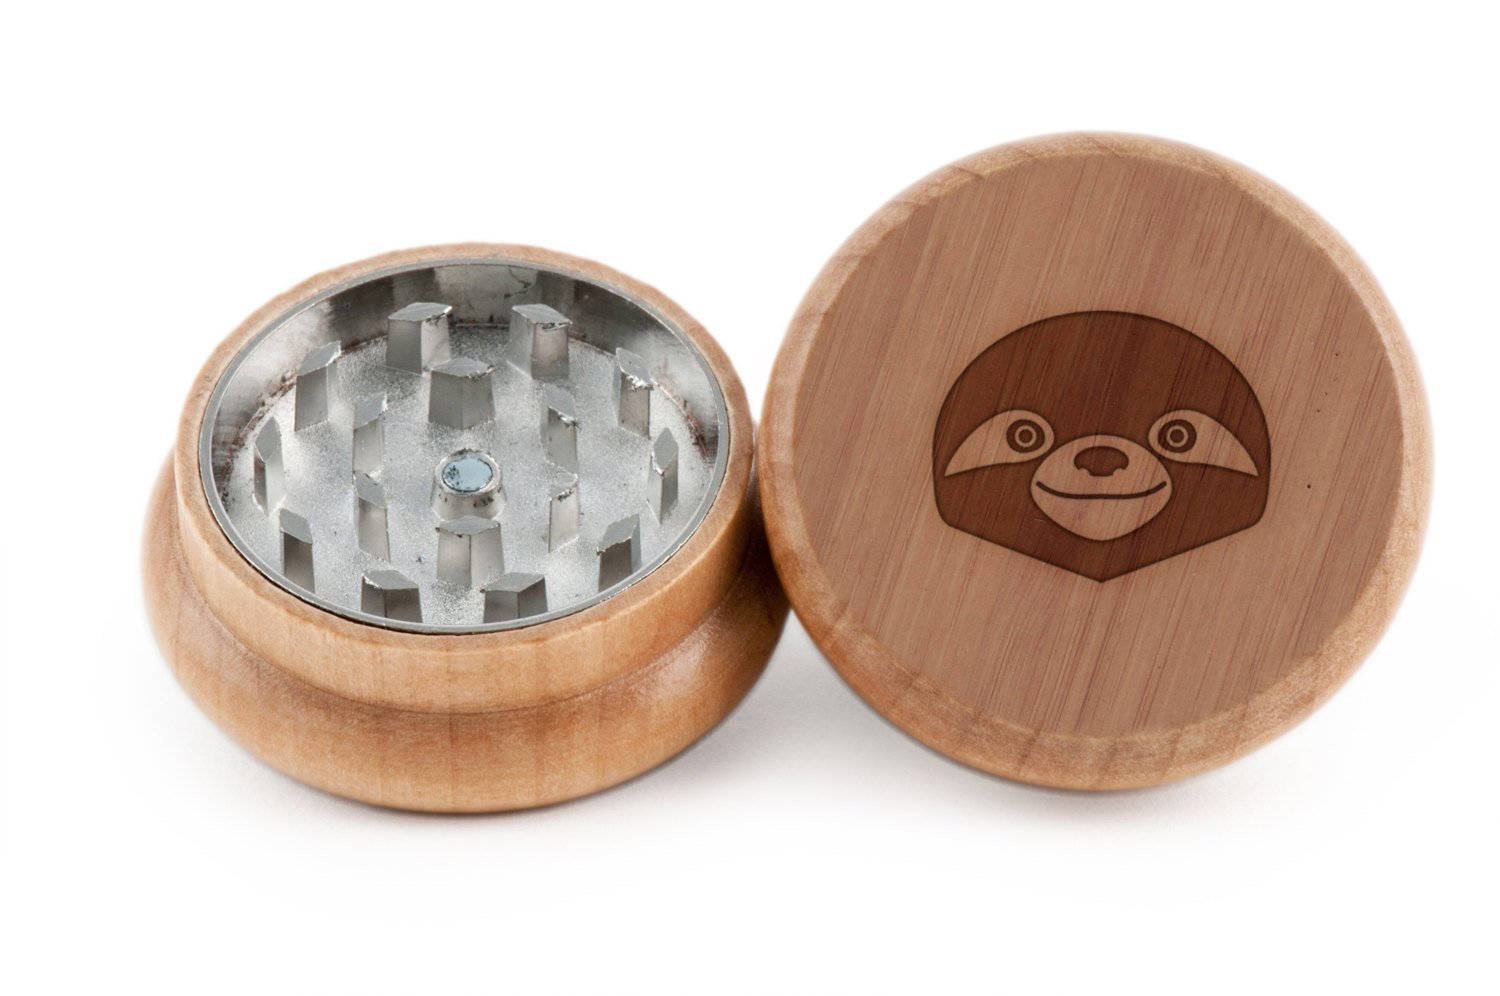 GRINDCANDY Spice And Herb Grinder - Laser Etched Sloth Face Design - Manual Oak Pepper Grinder